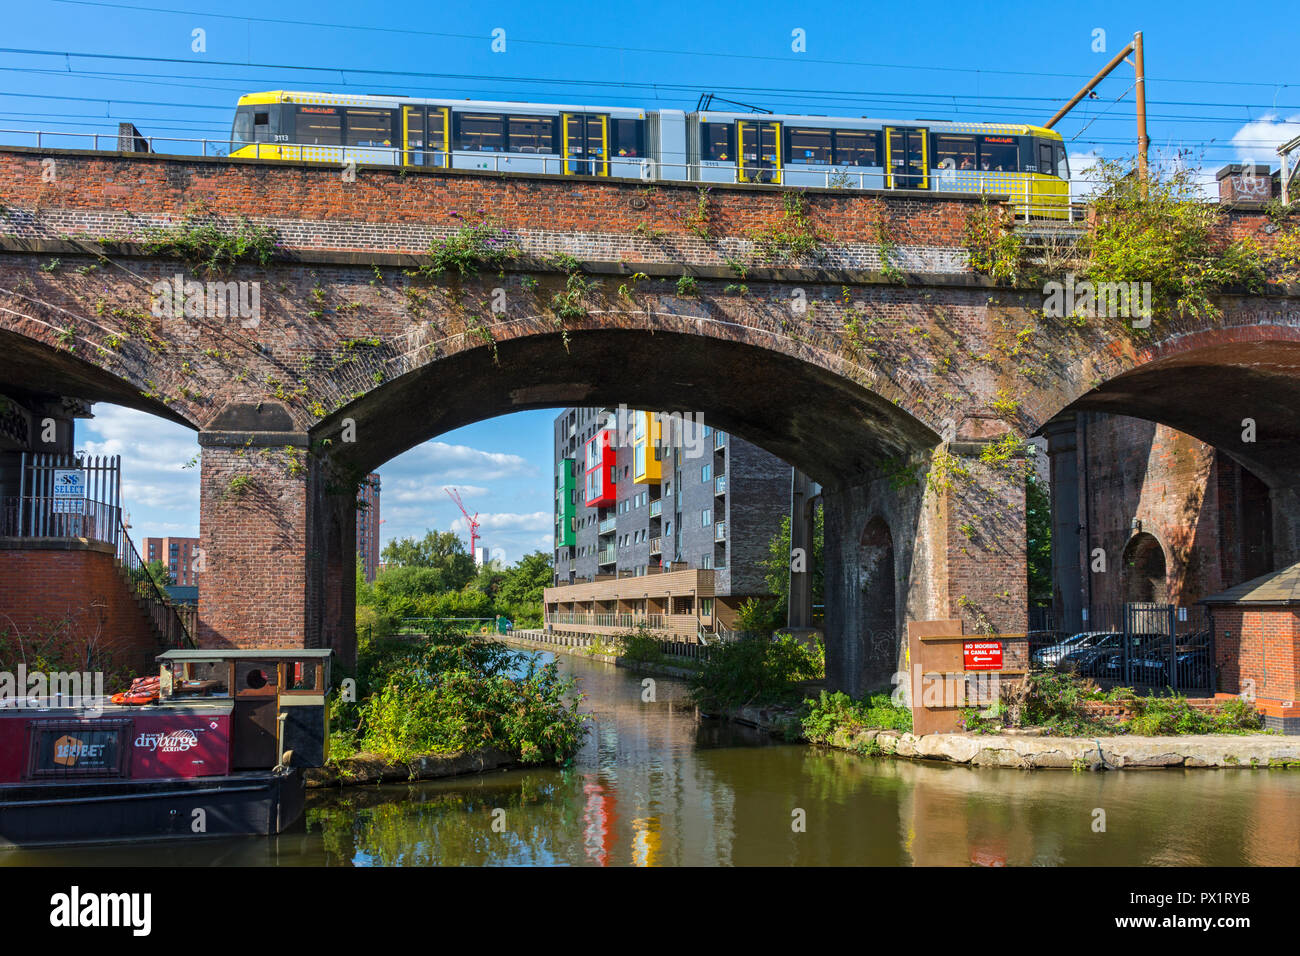 Metrolink tram on a Victorian railway bridge at Potato Wharf on the Bridgewater Canal at Castlefield, Manchester, England, UK Stock Photo